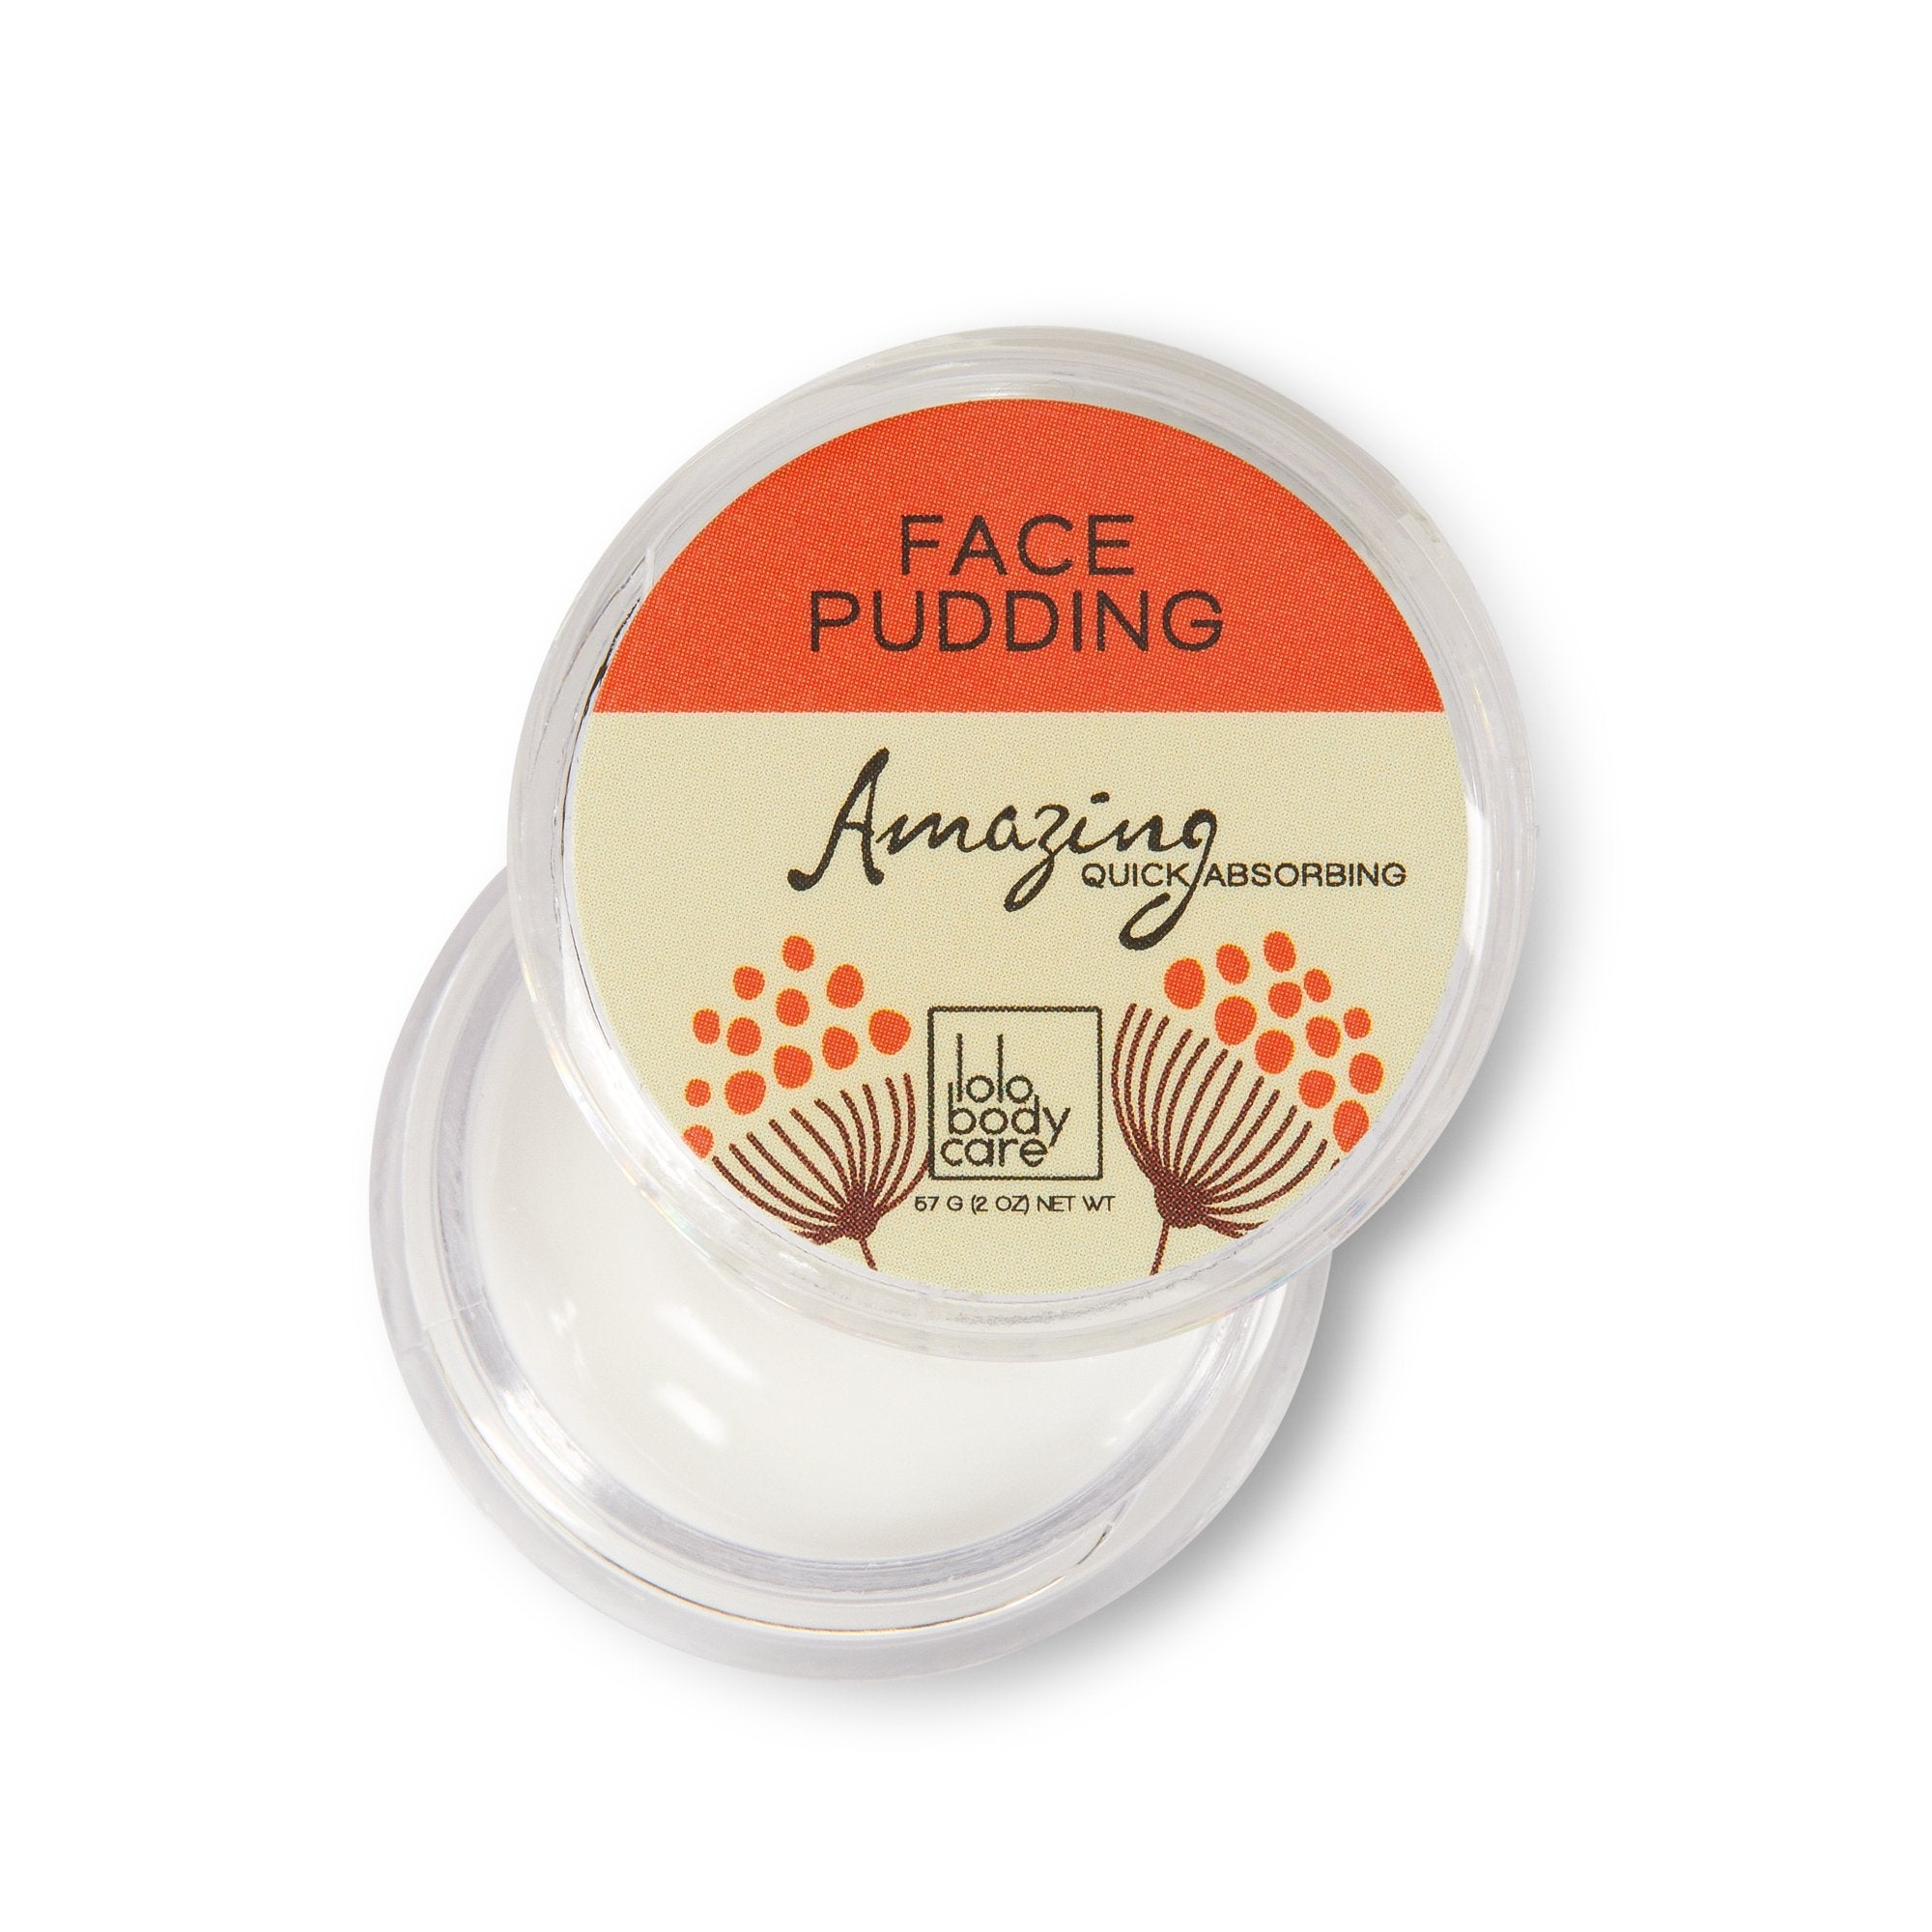 Face Pudding